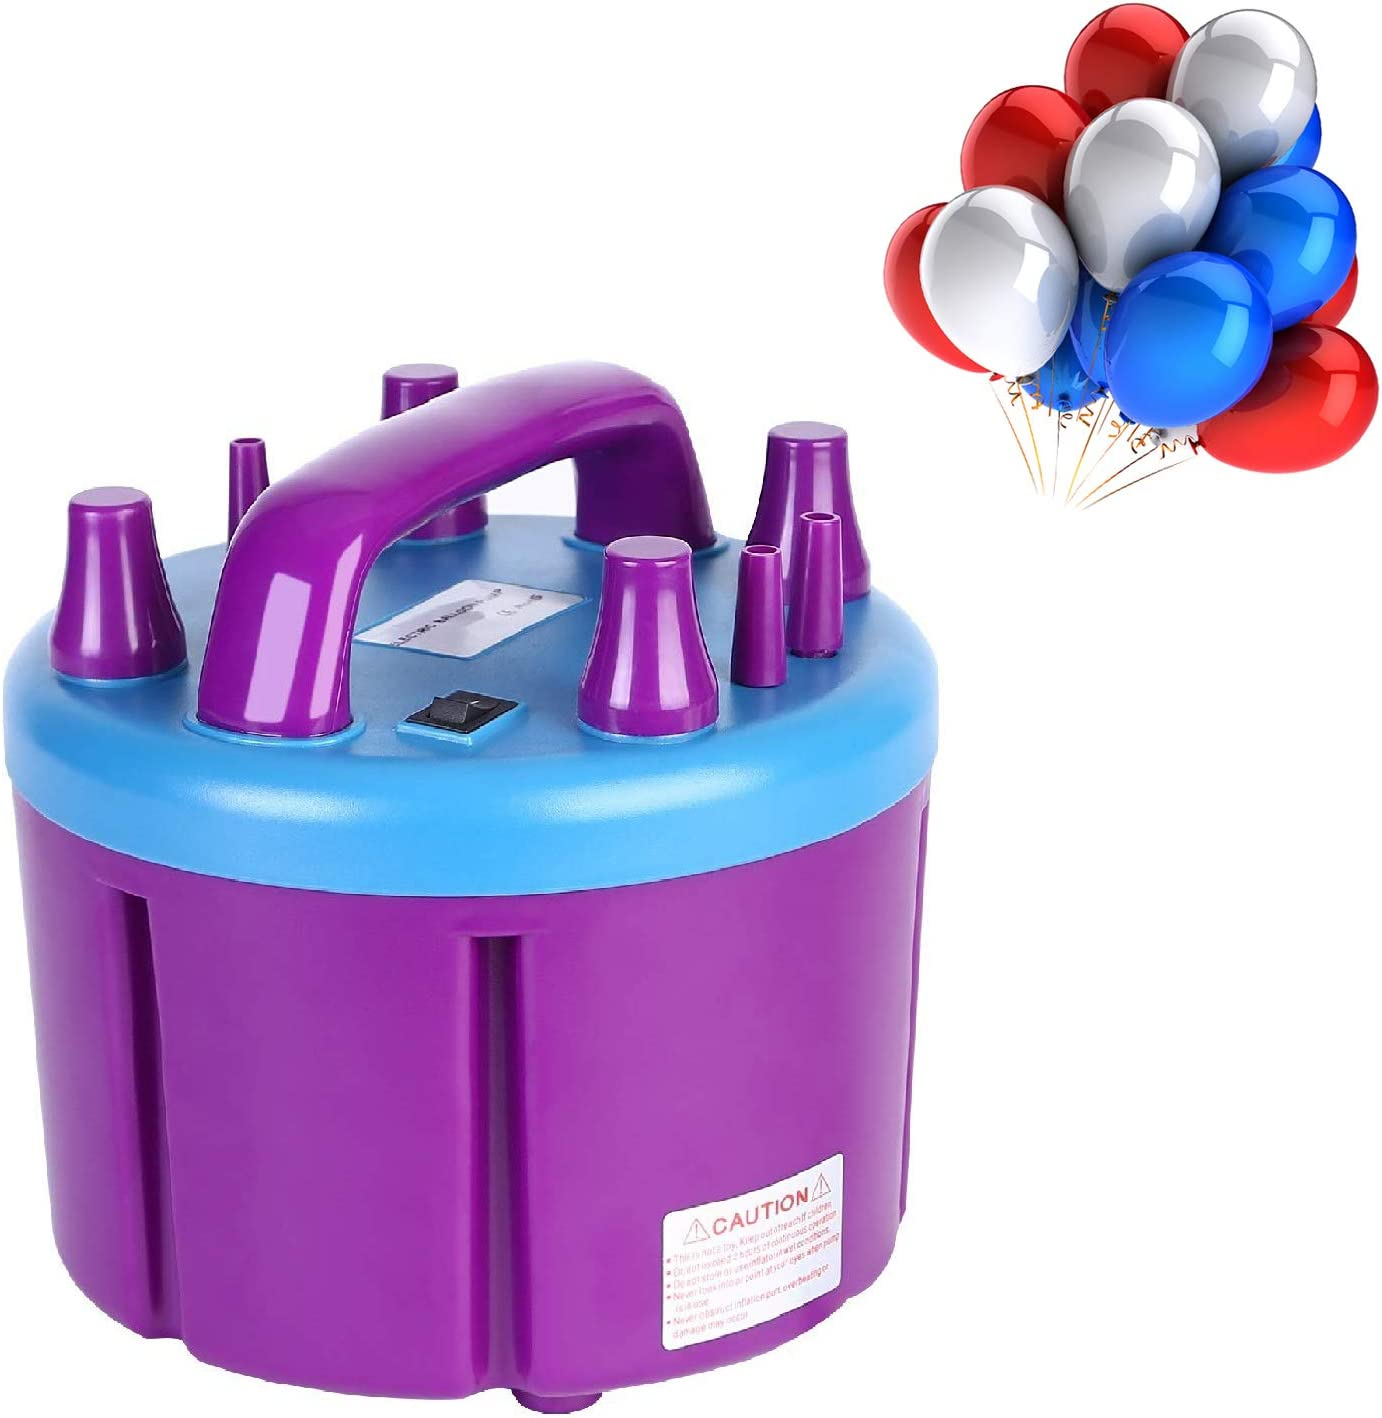 Max 58% OFF Maddott Max 66% OFF Electric Balloon Blower Pump 100 Automatic 110V Inflator